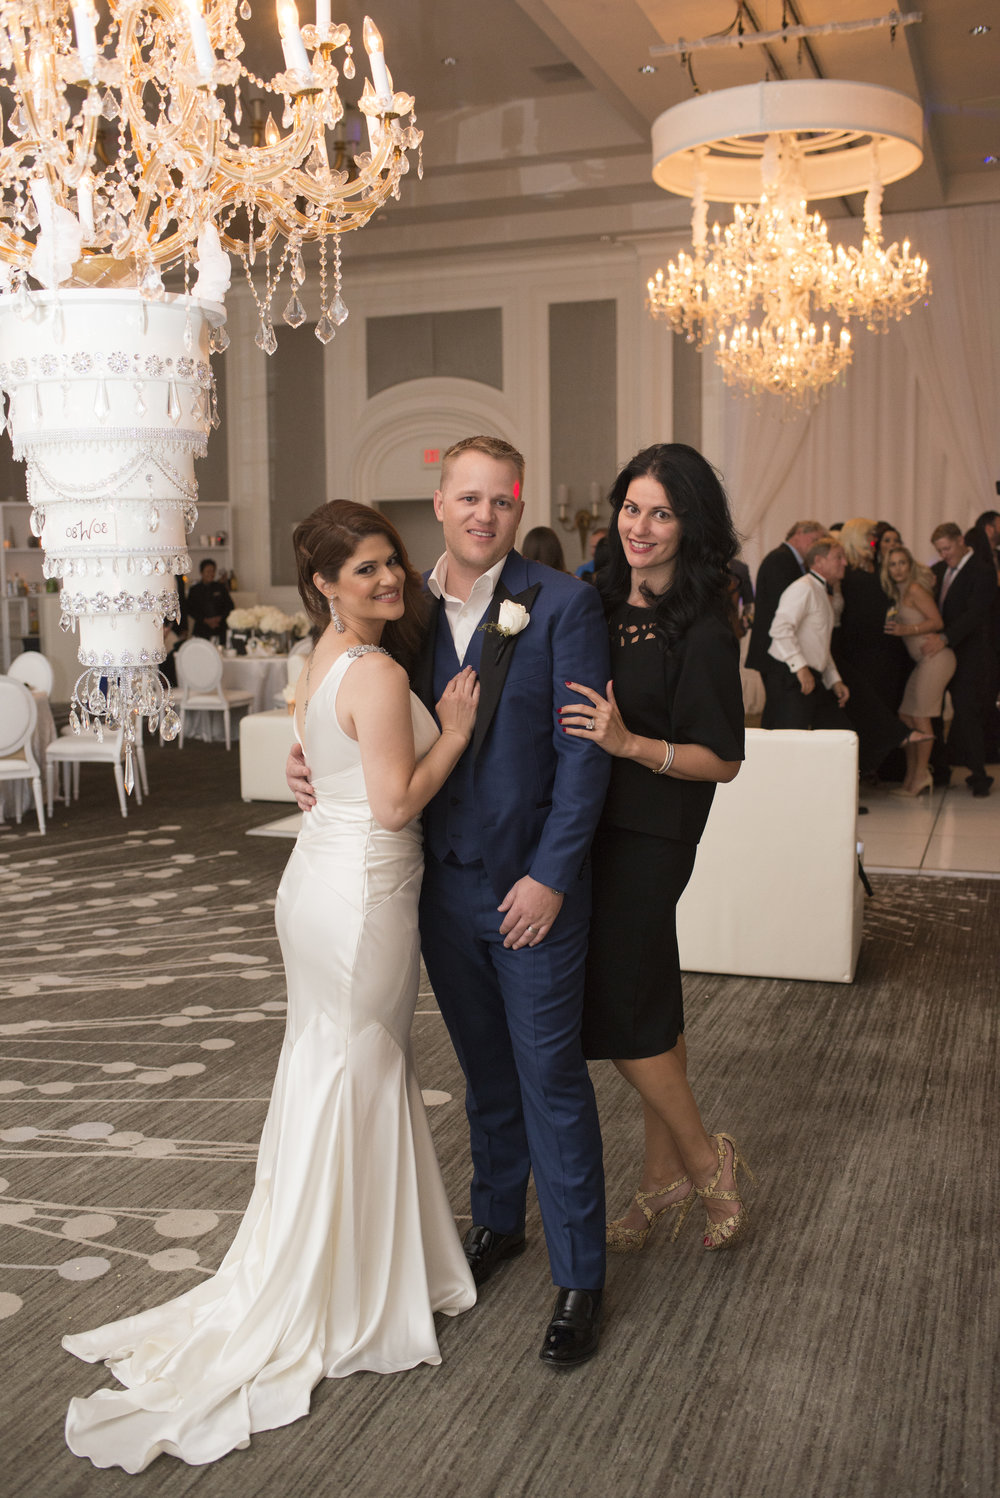 Luxury Las VegasWedding Planner Andrea Eppolito with bride Jennifer Hixson and groom Travis Zane Weber.